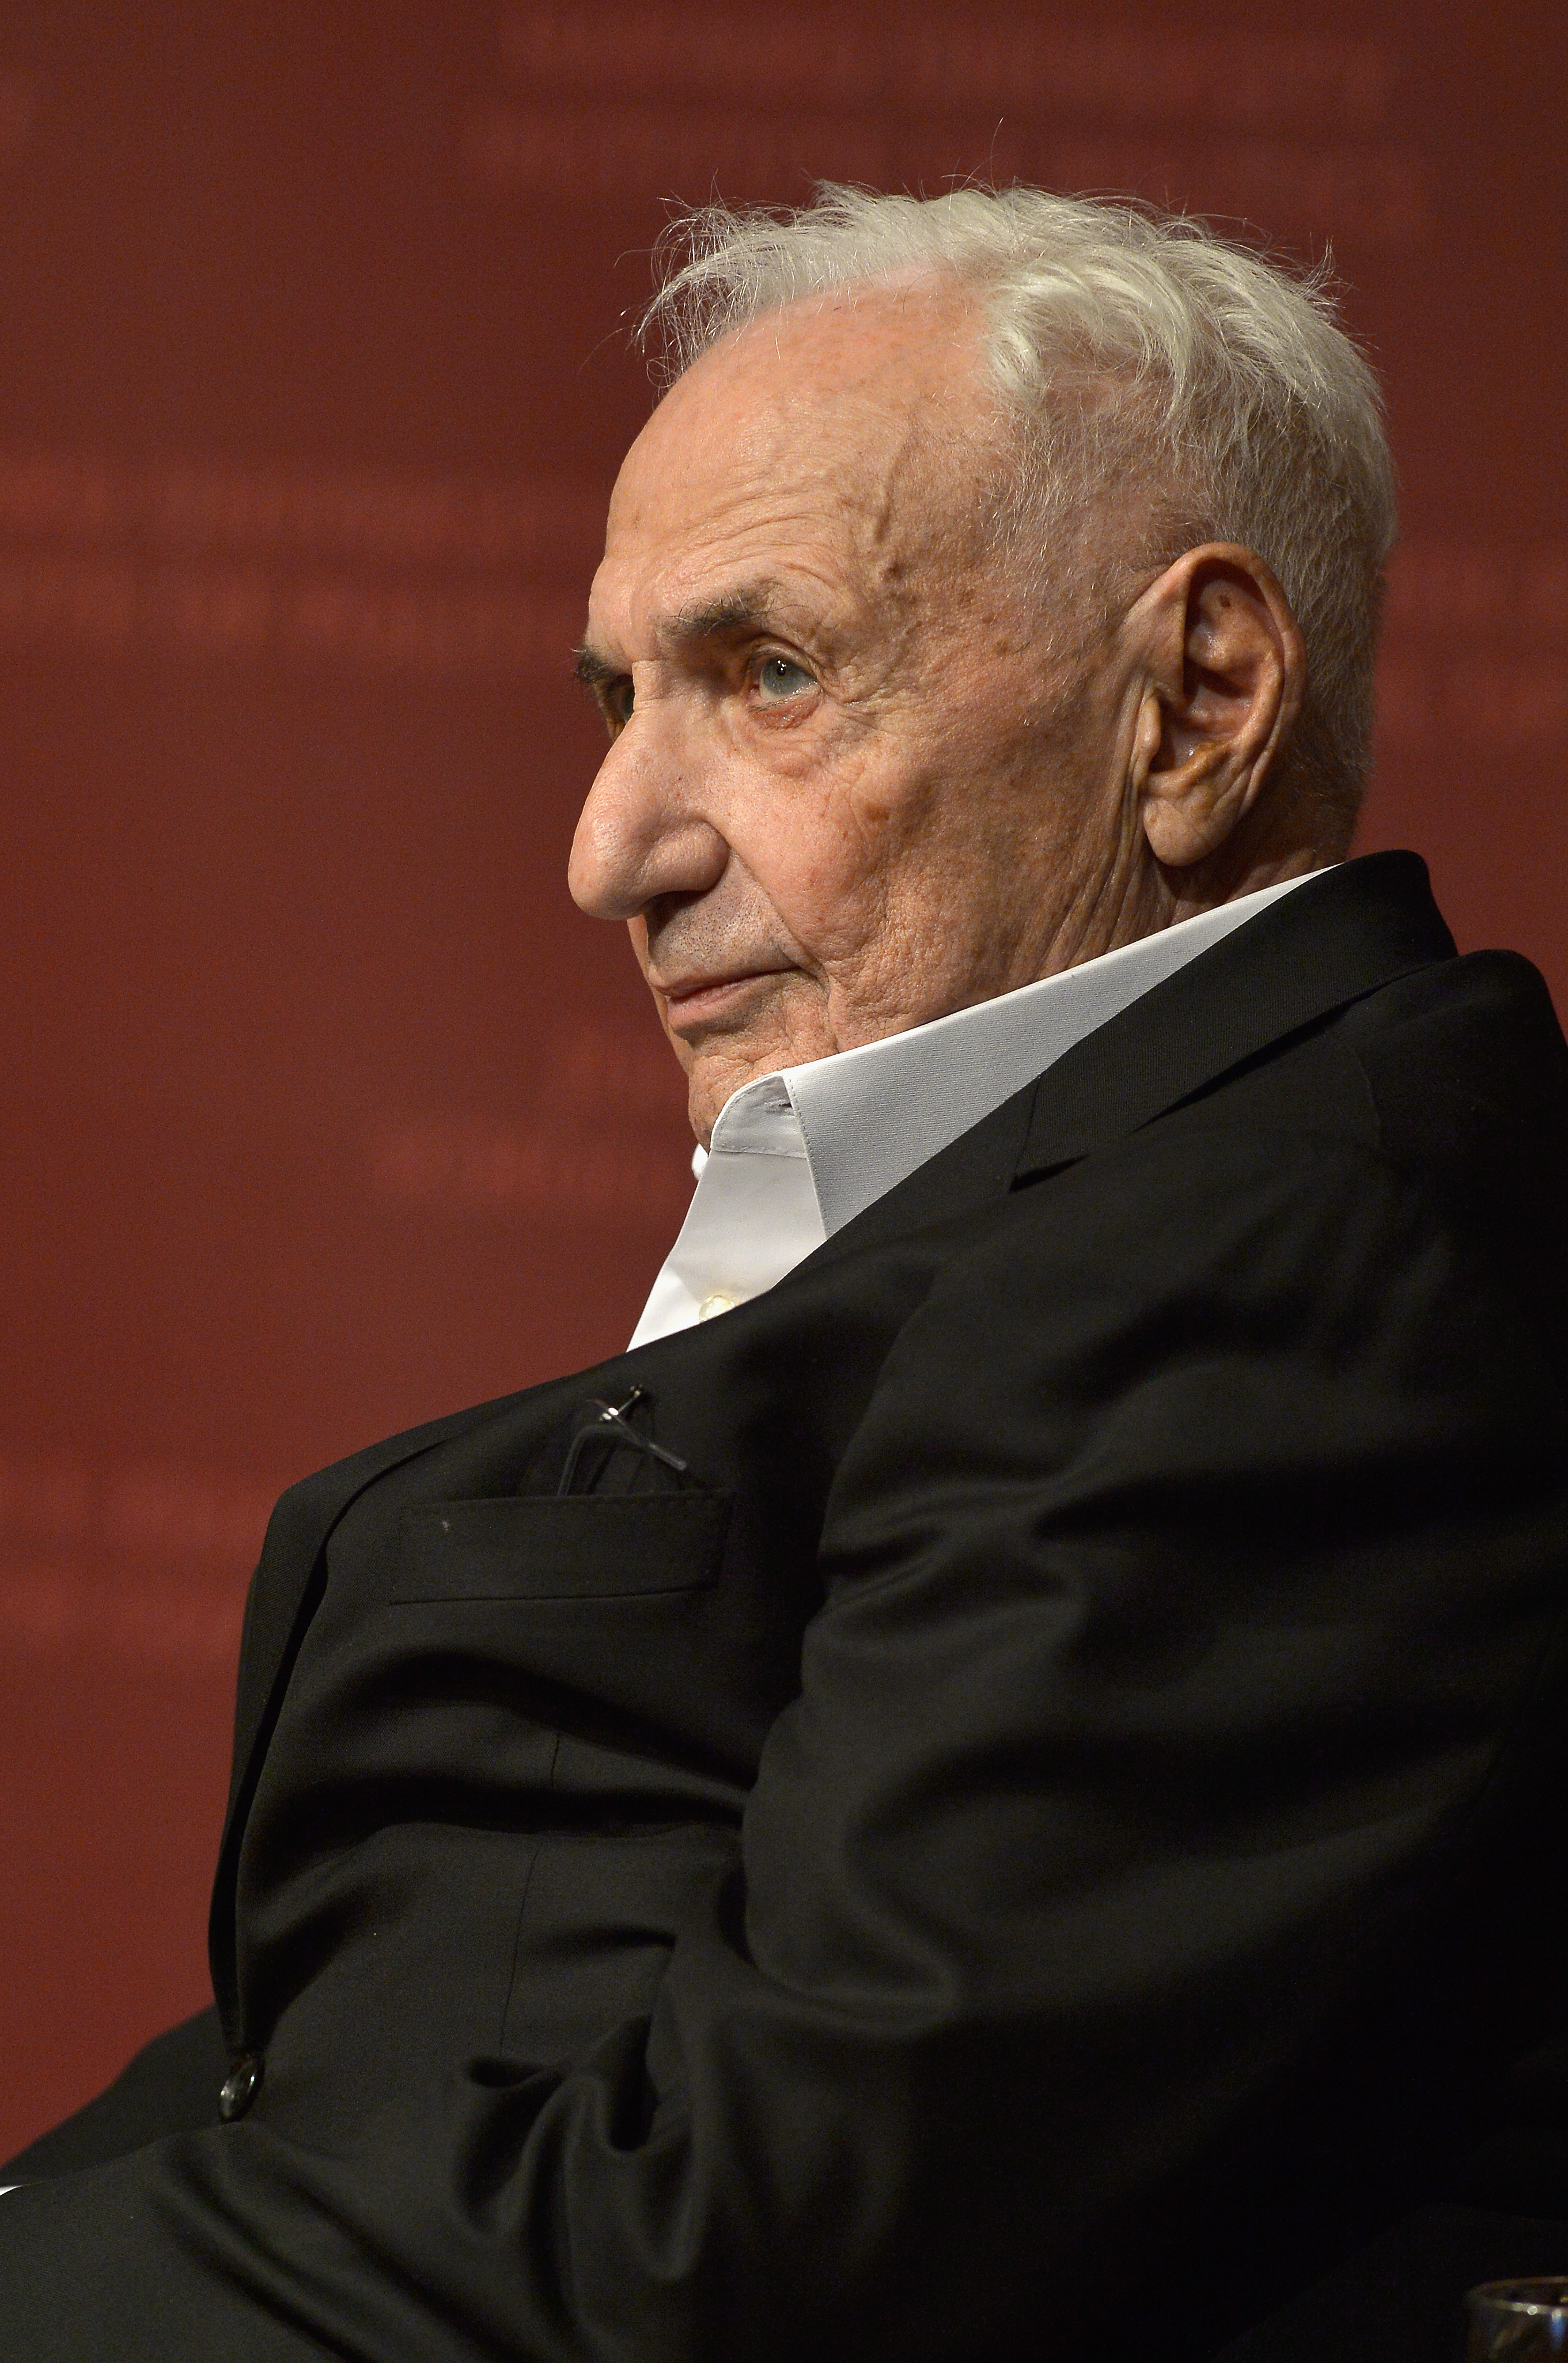 Frank Gehry during  A Conversation with Architect Frank Gehry  at Harvard University in Cambridge, Mass. on Nov. 13, 2015.